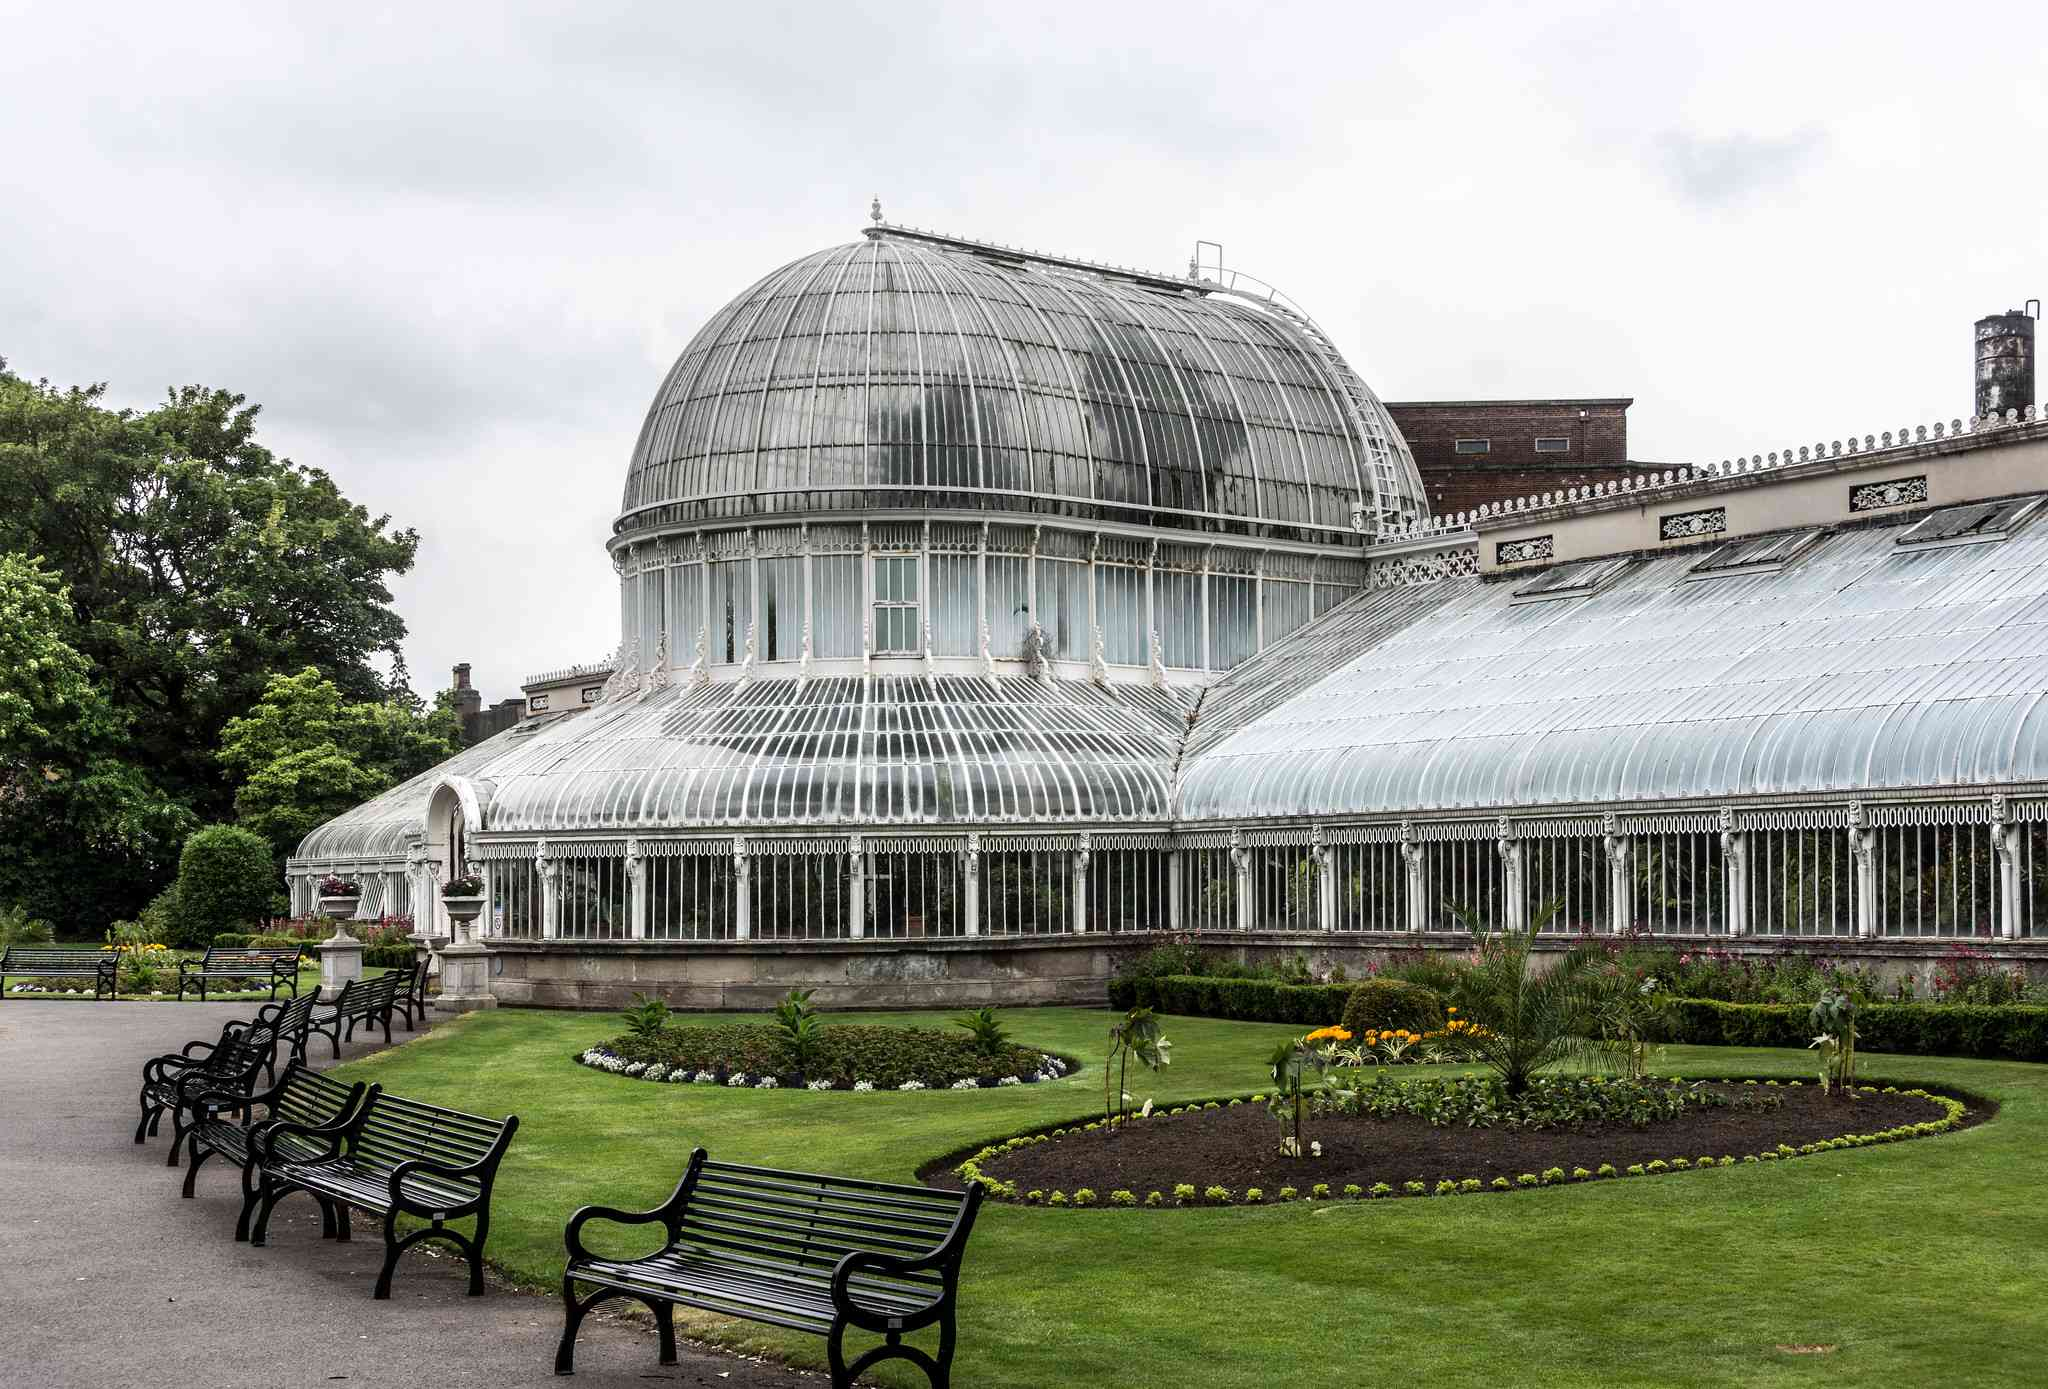 The Victorian glasshouses at the Belfast Botanic Gardens are home to rare plants